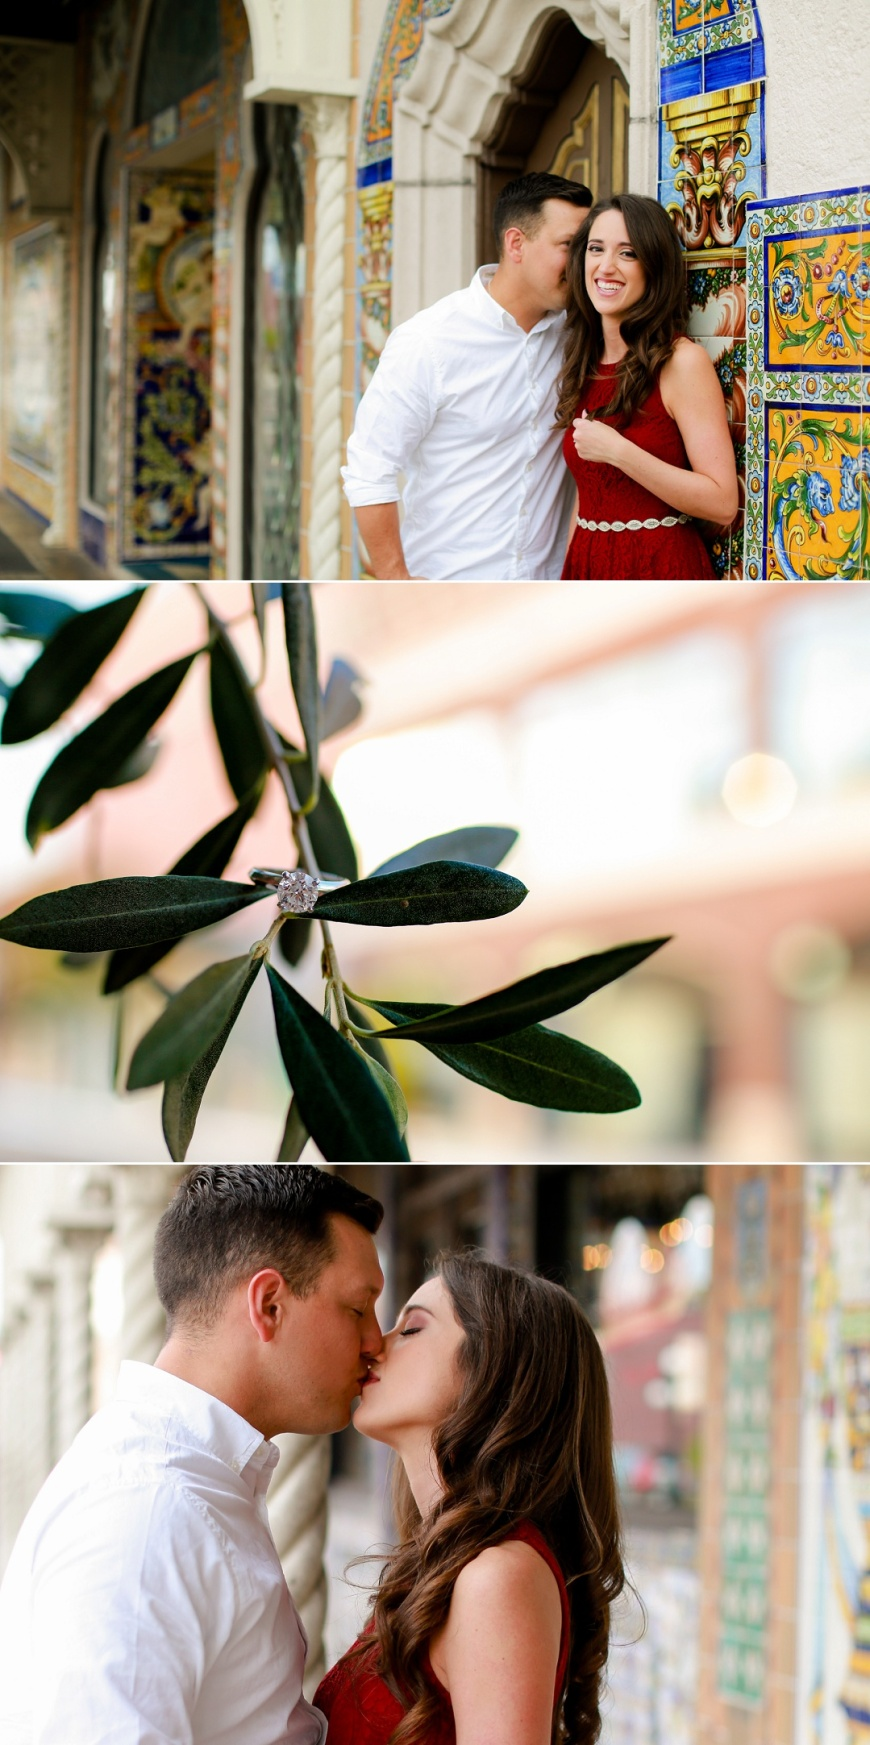 Ybor-City-Tampa-Engagement-Photographer_1020.jpg